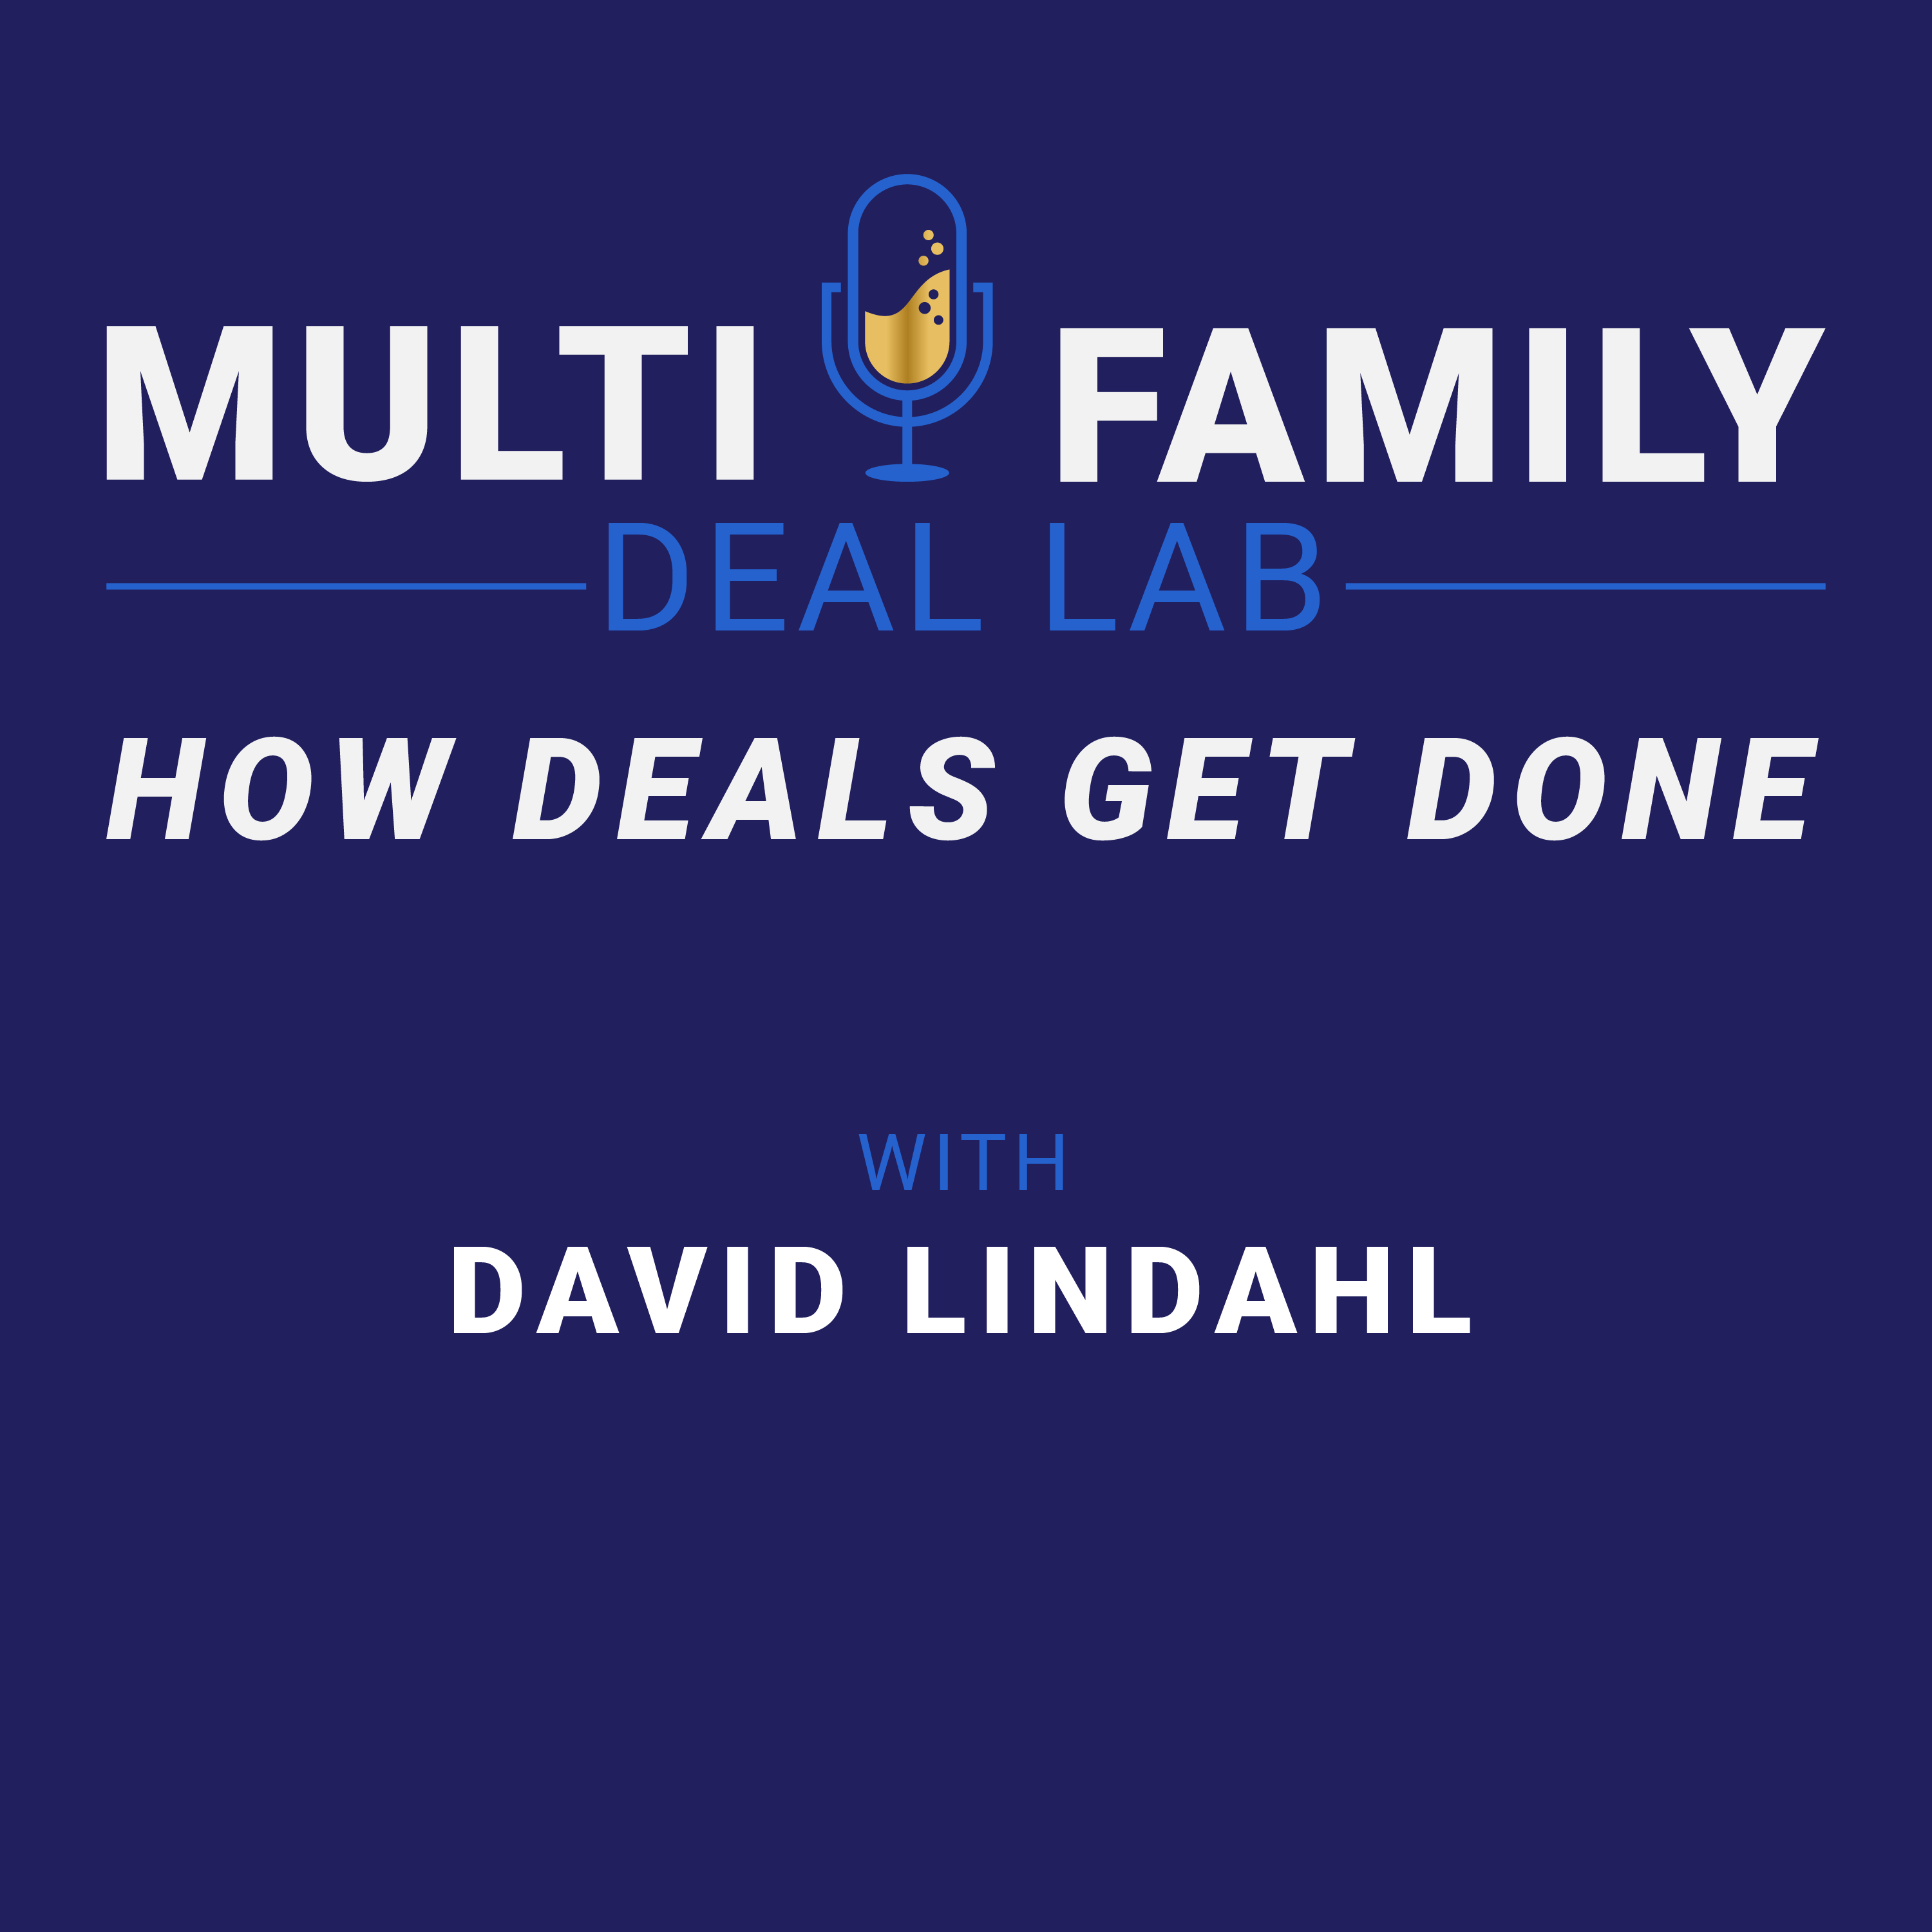 Multi-Family Deal Lab Podcast show art